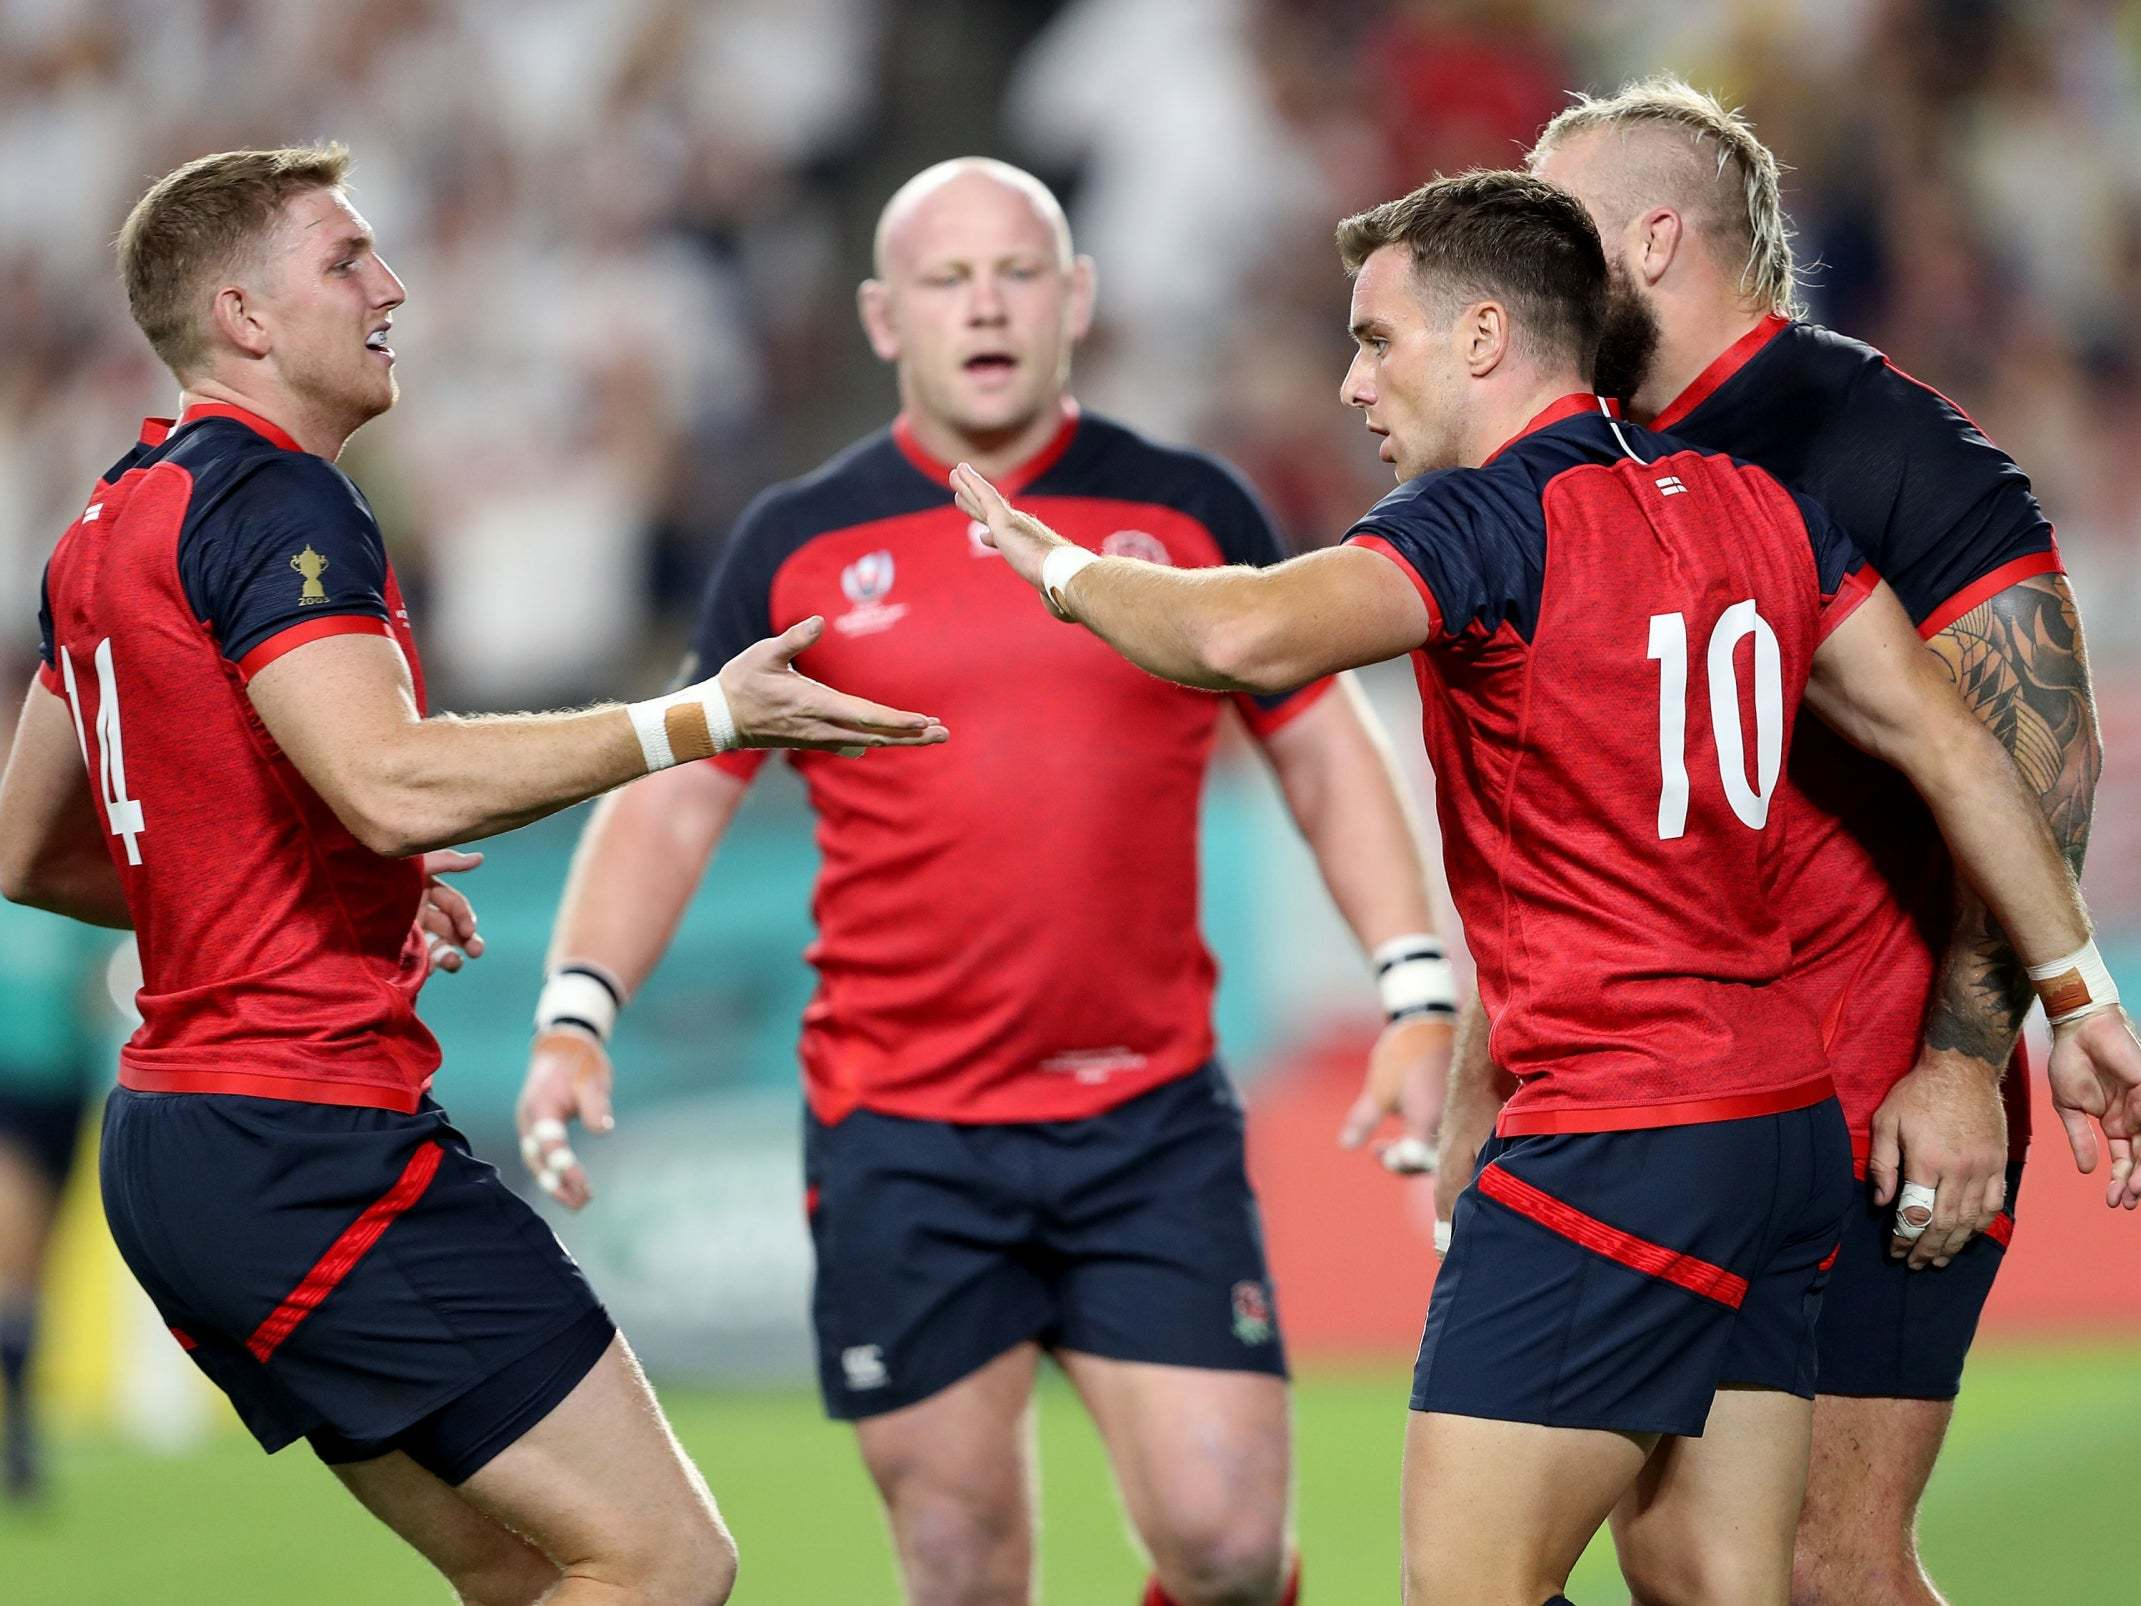 England Crush U.S. at Rugby World Cup